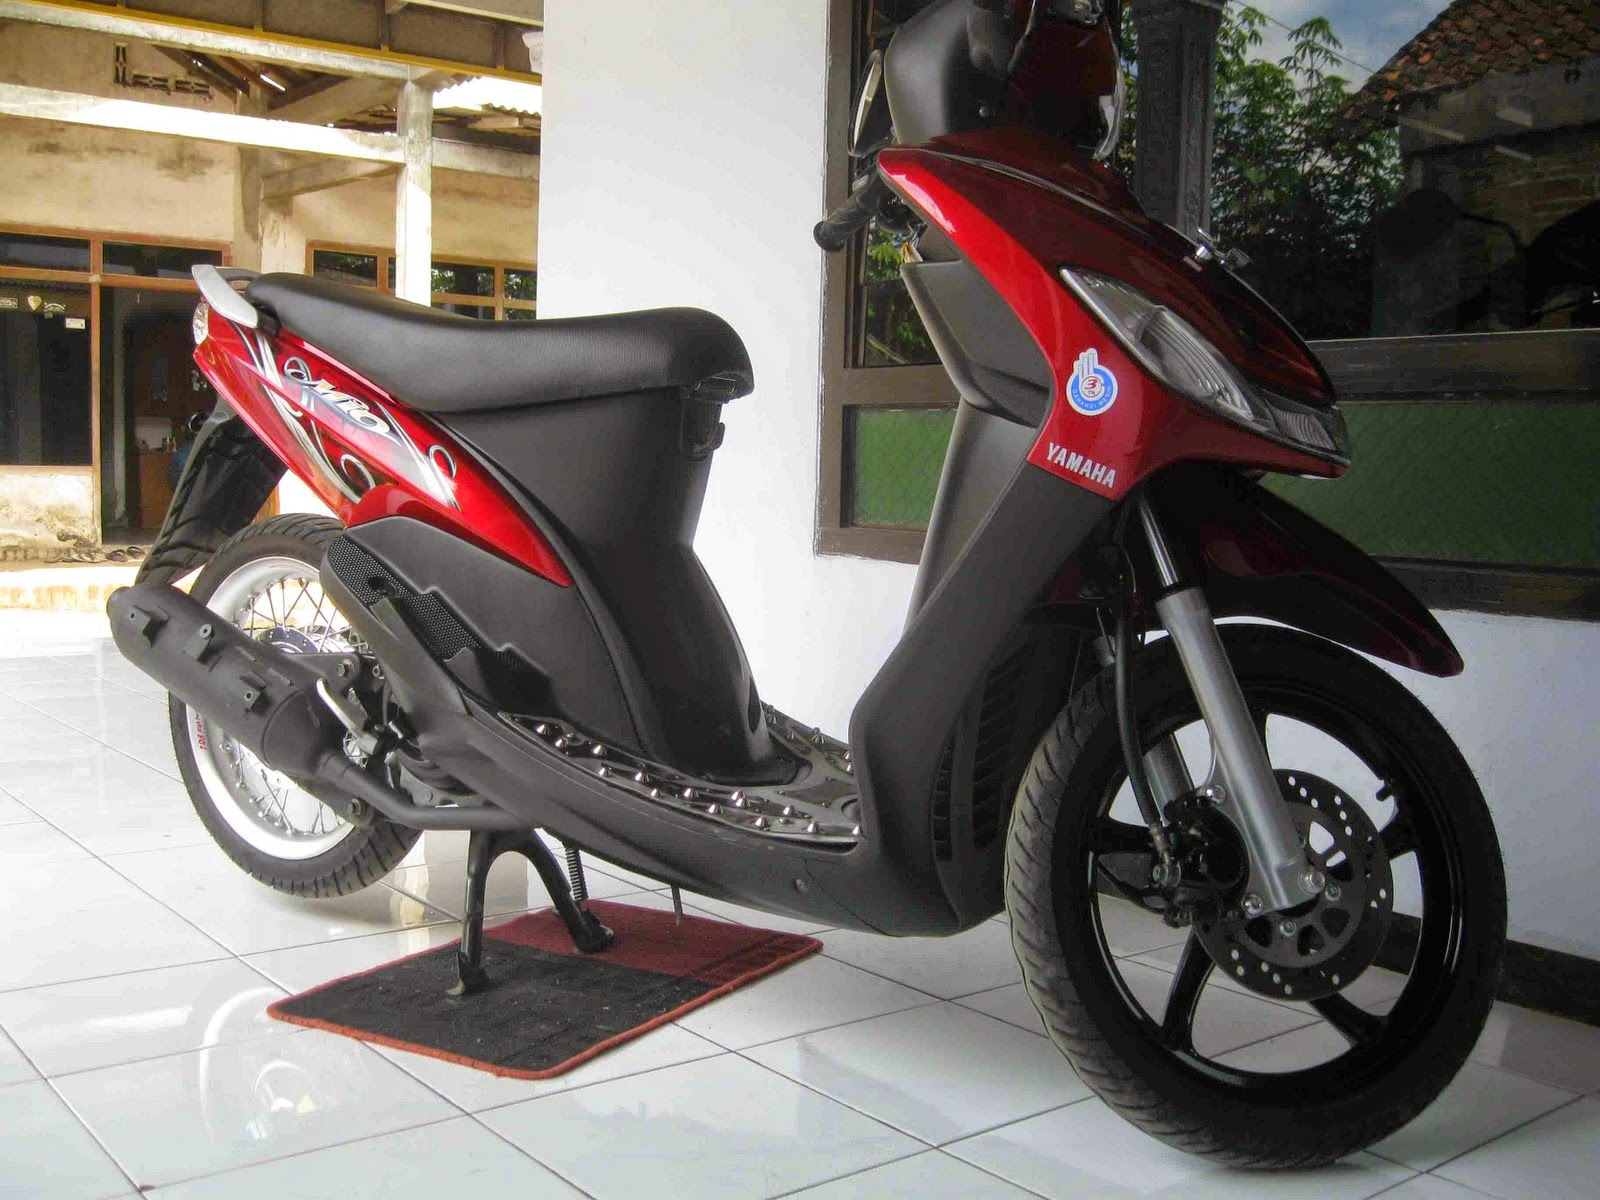 82 Modifikasi Motor Mio Sporty Warna Merah Sobat Modifikasi